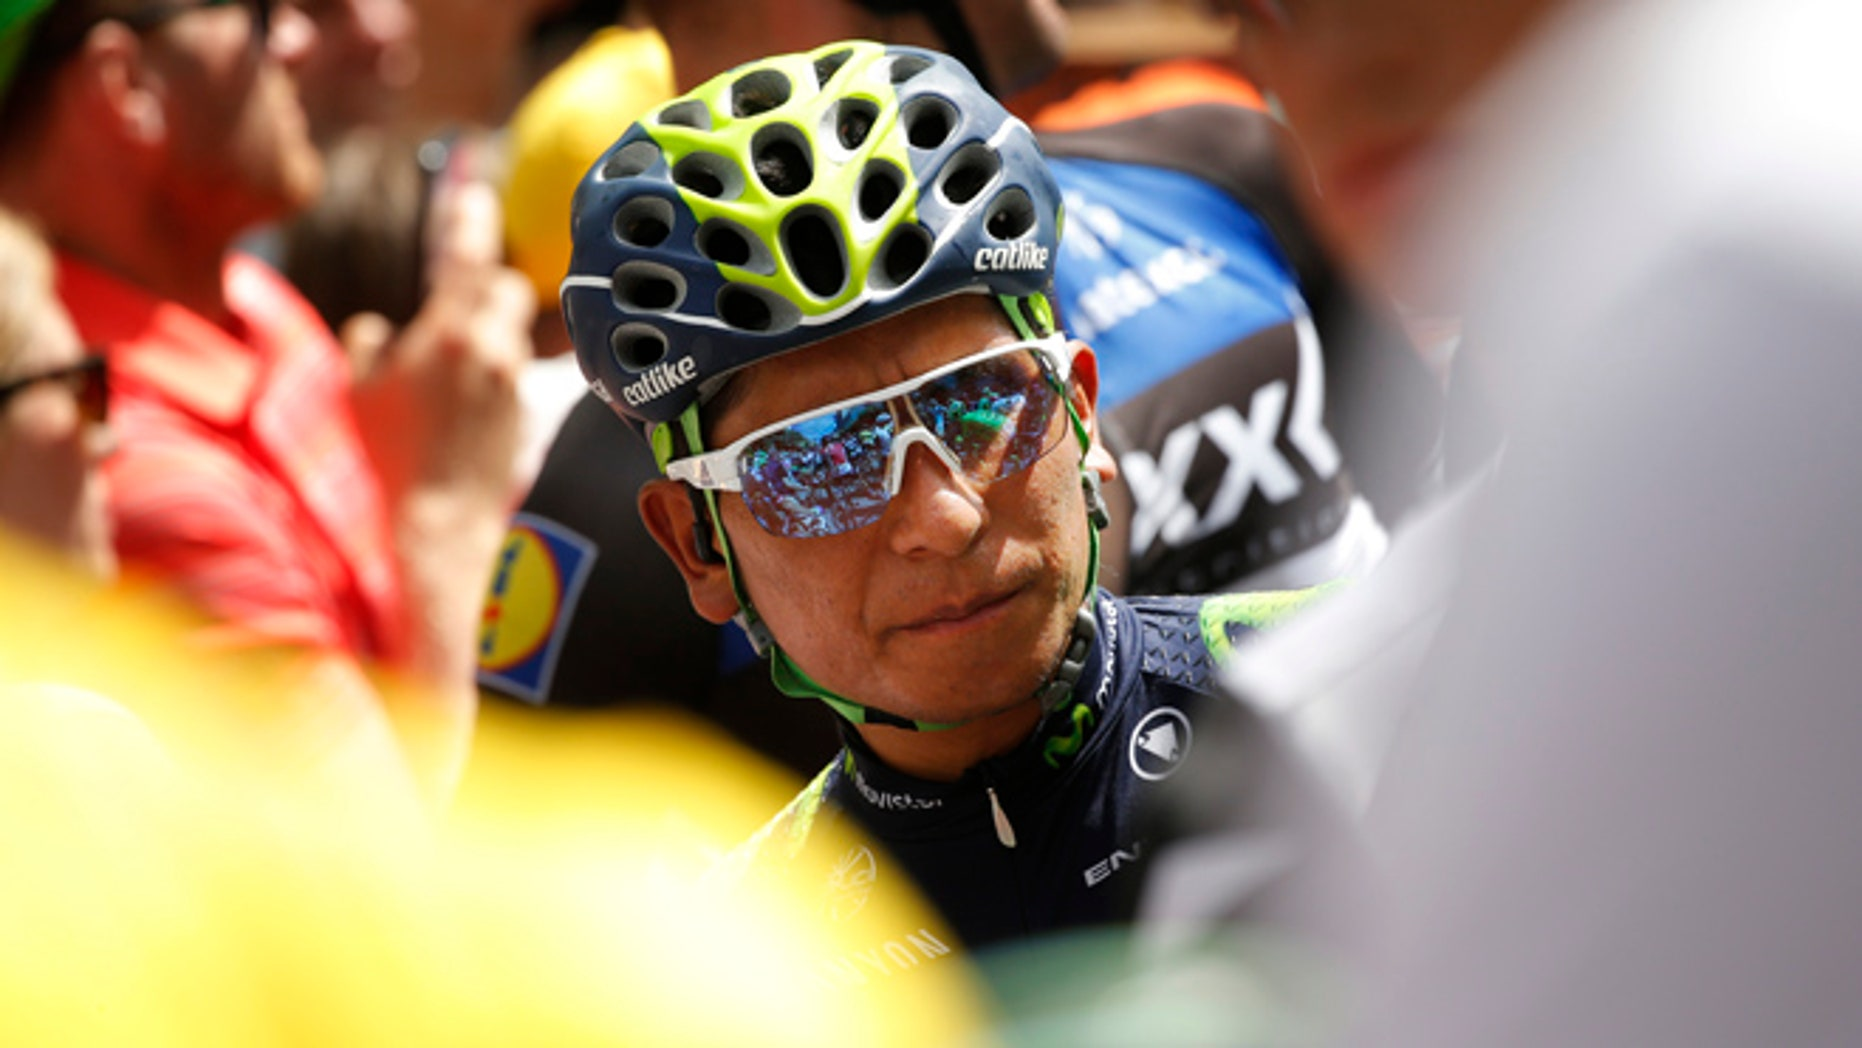 Colombiaâs Nairo Quintana waits for the start of the fifth stage of the Tour de France cycling race over 216 kilometers (134.2 miles) with start in Limoges and finish in Le Lioran, France, Wednesday, July 6, 2016. (AP Photo/Christophe Ena)